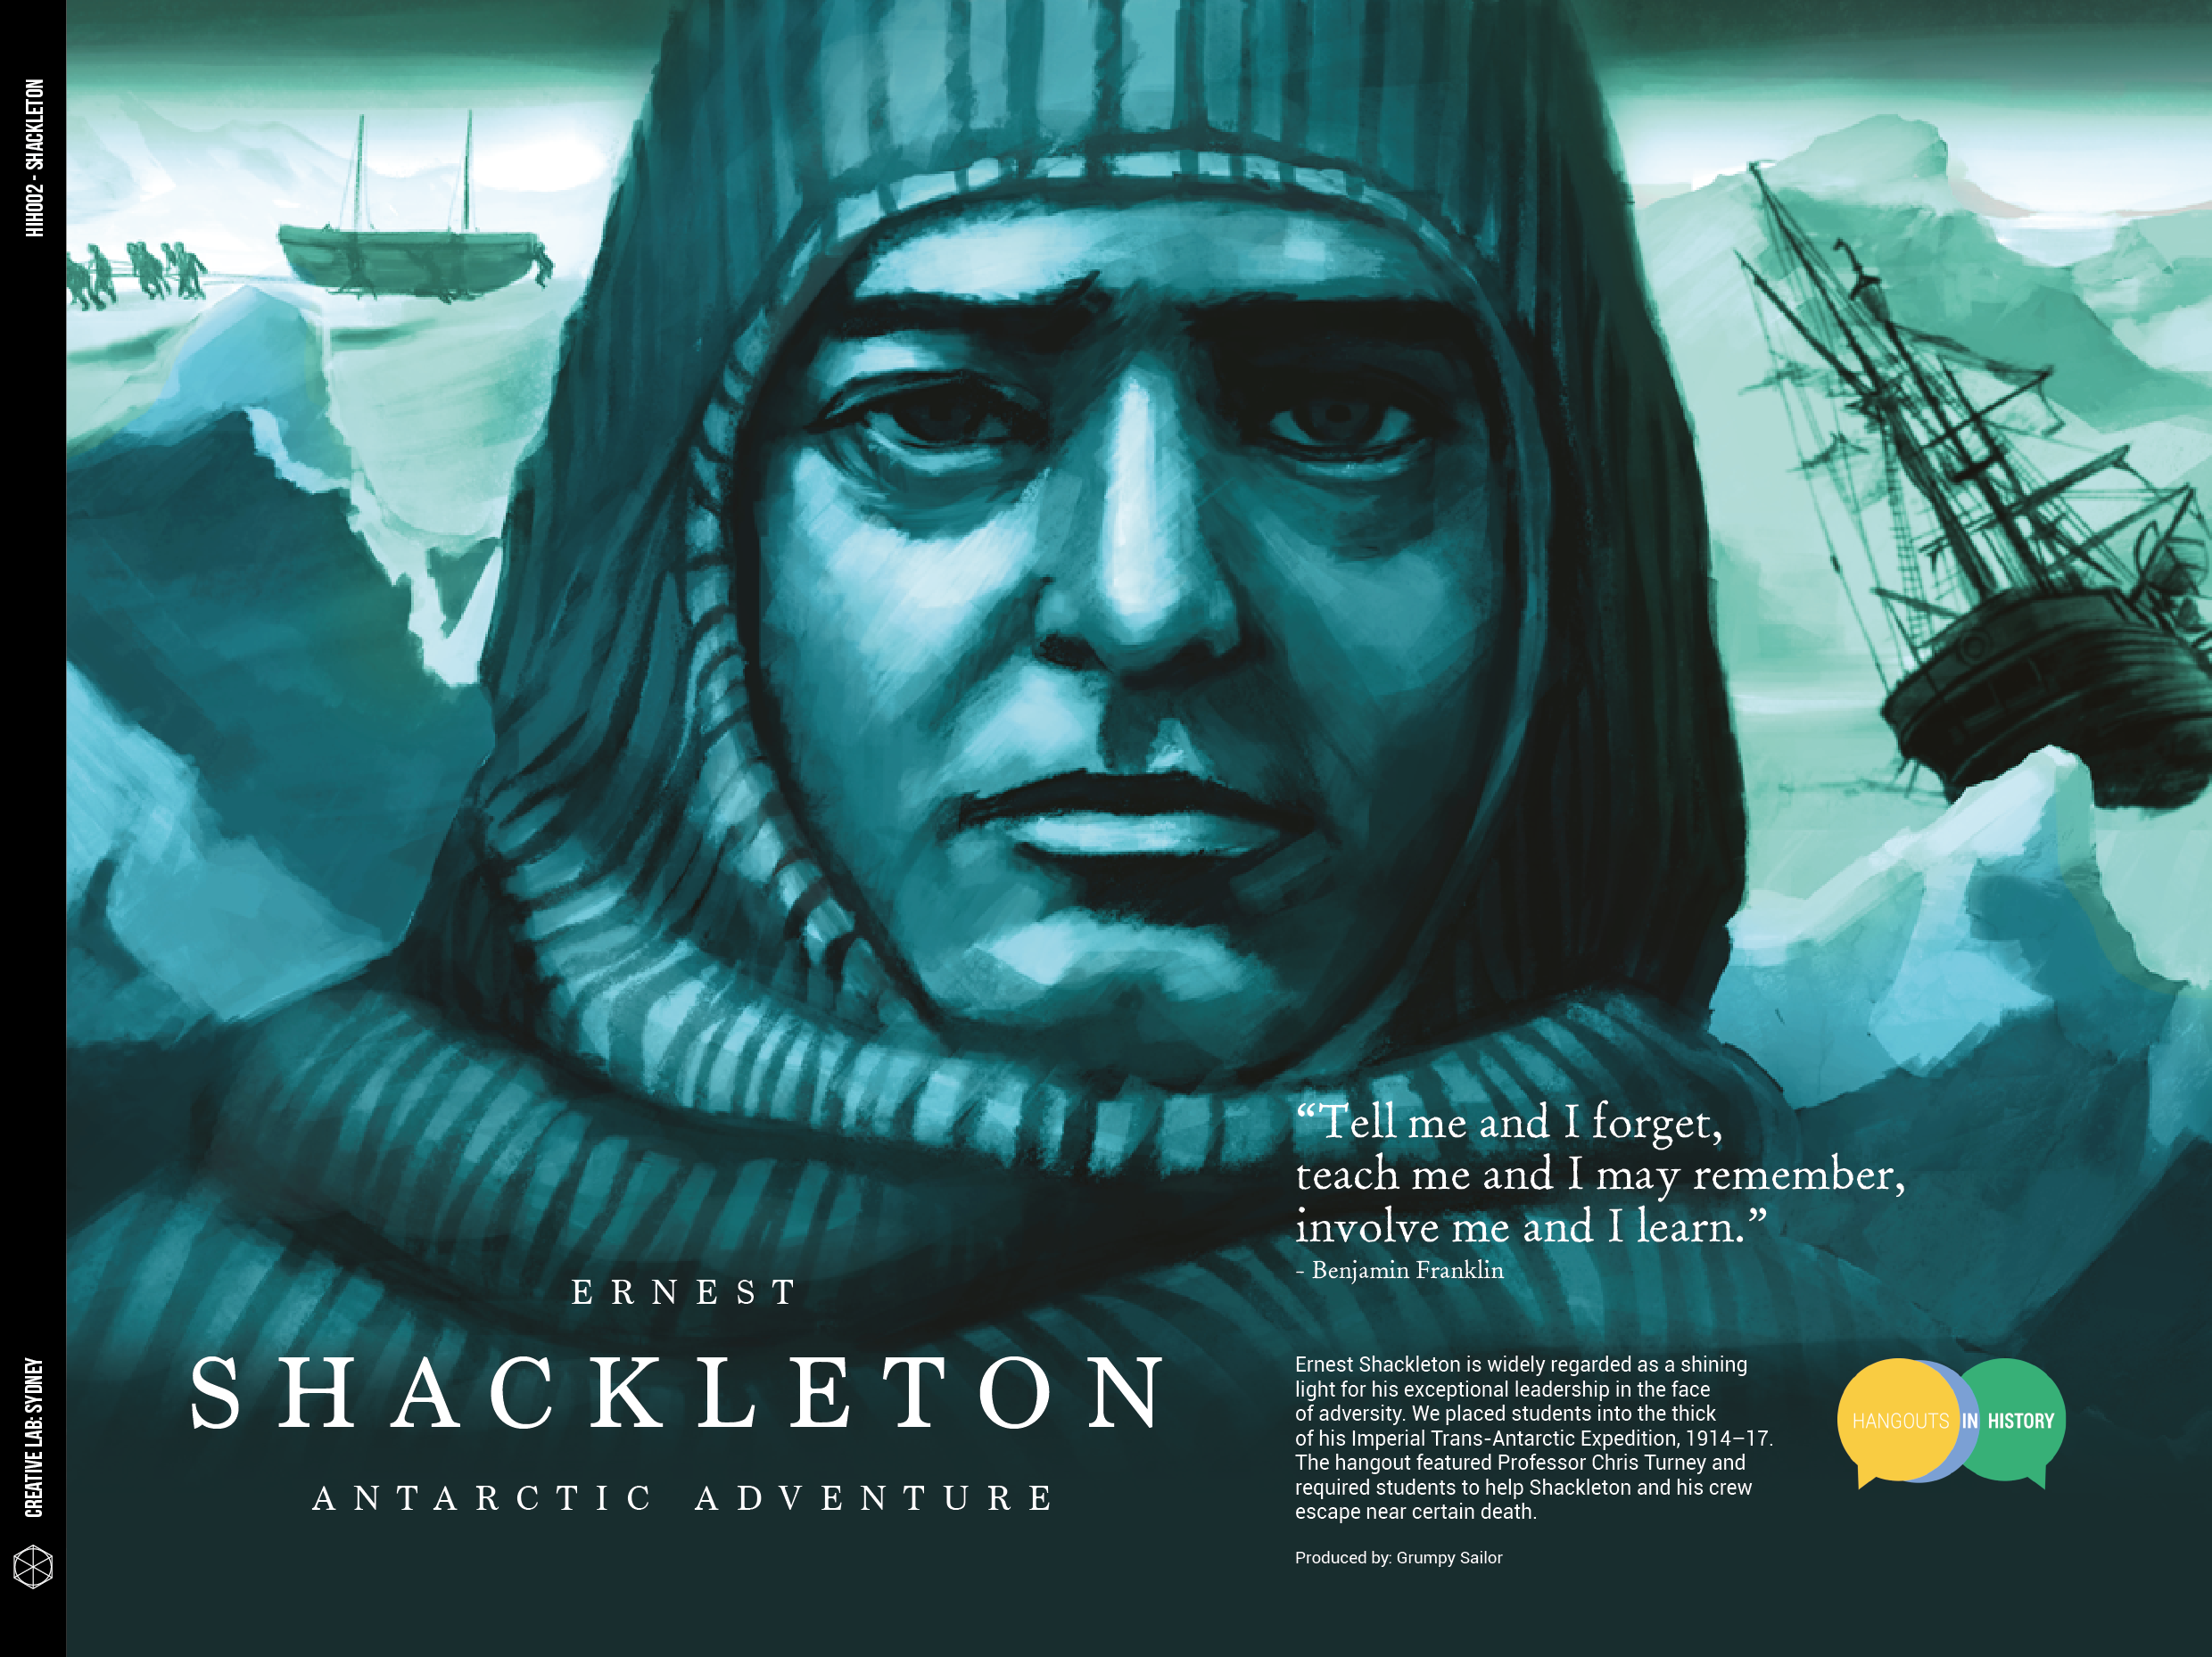 Shackleton_HIH_Poster-01.png